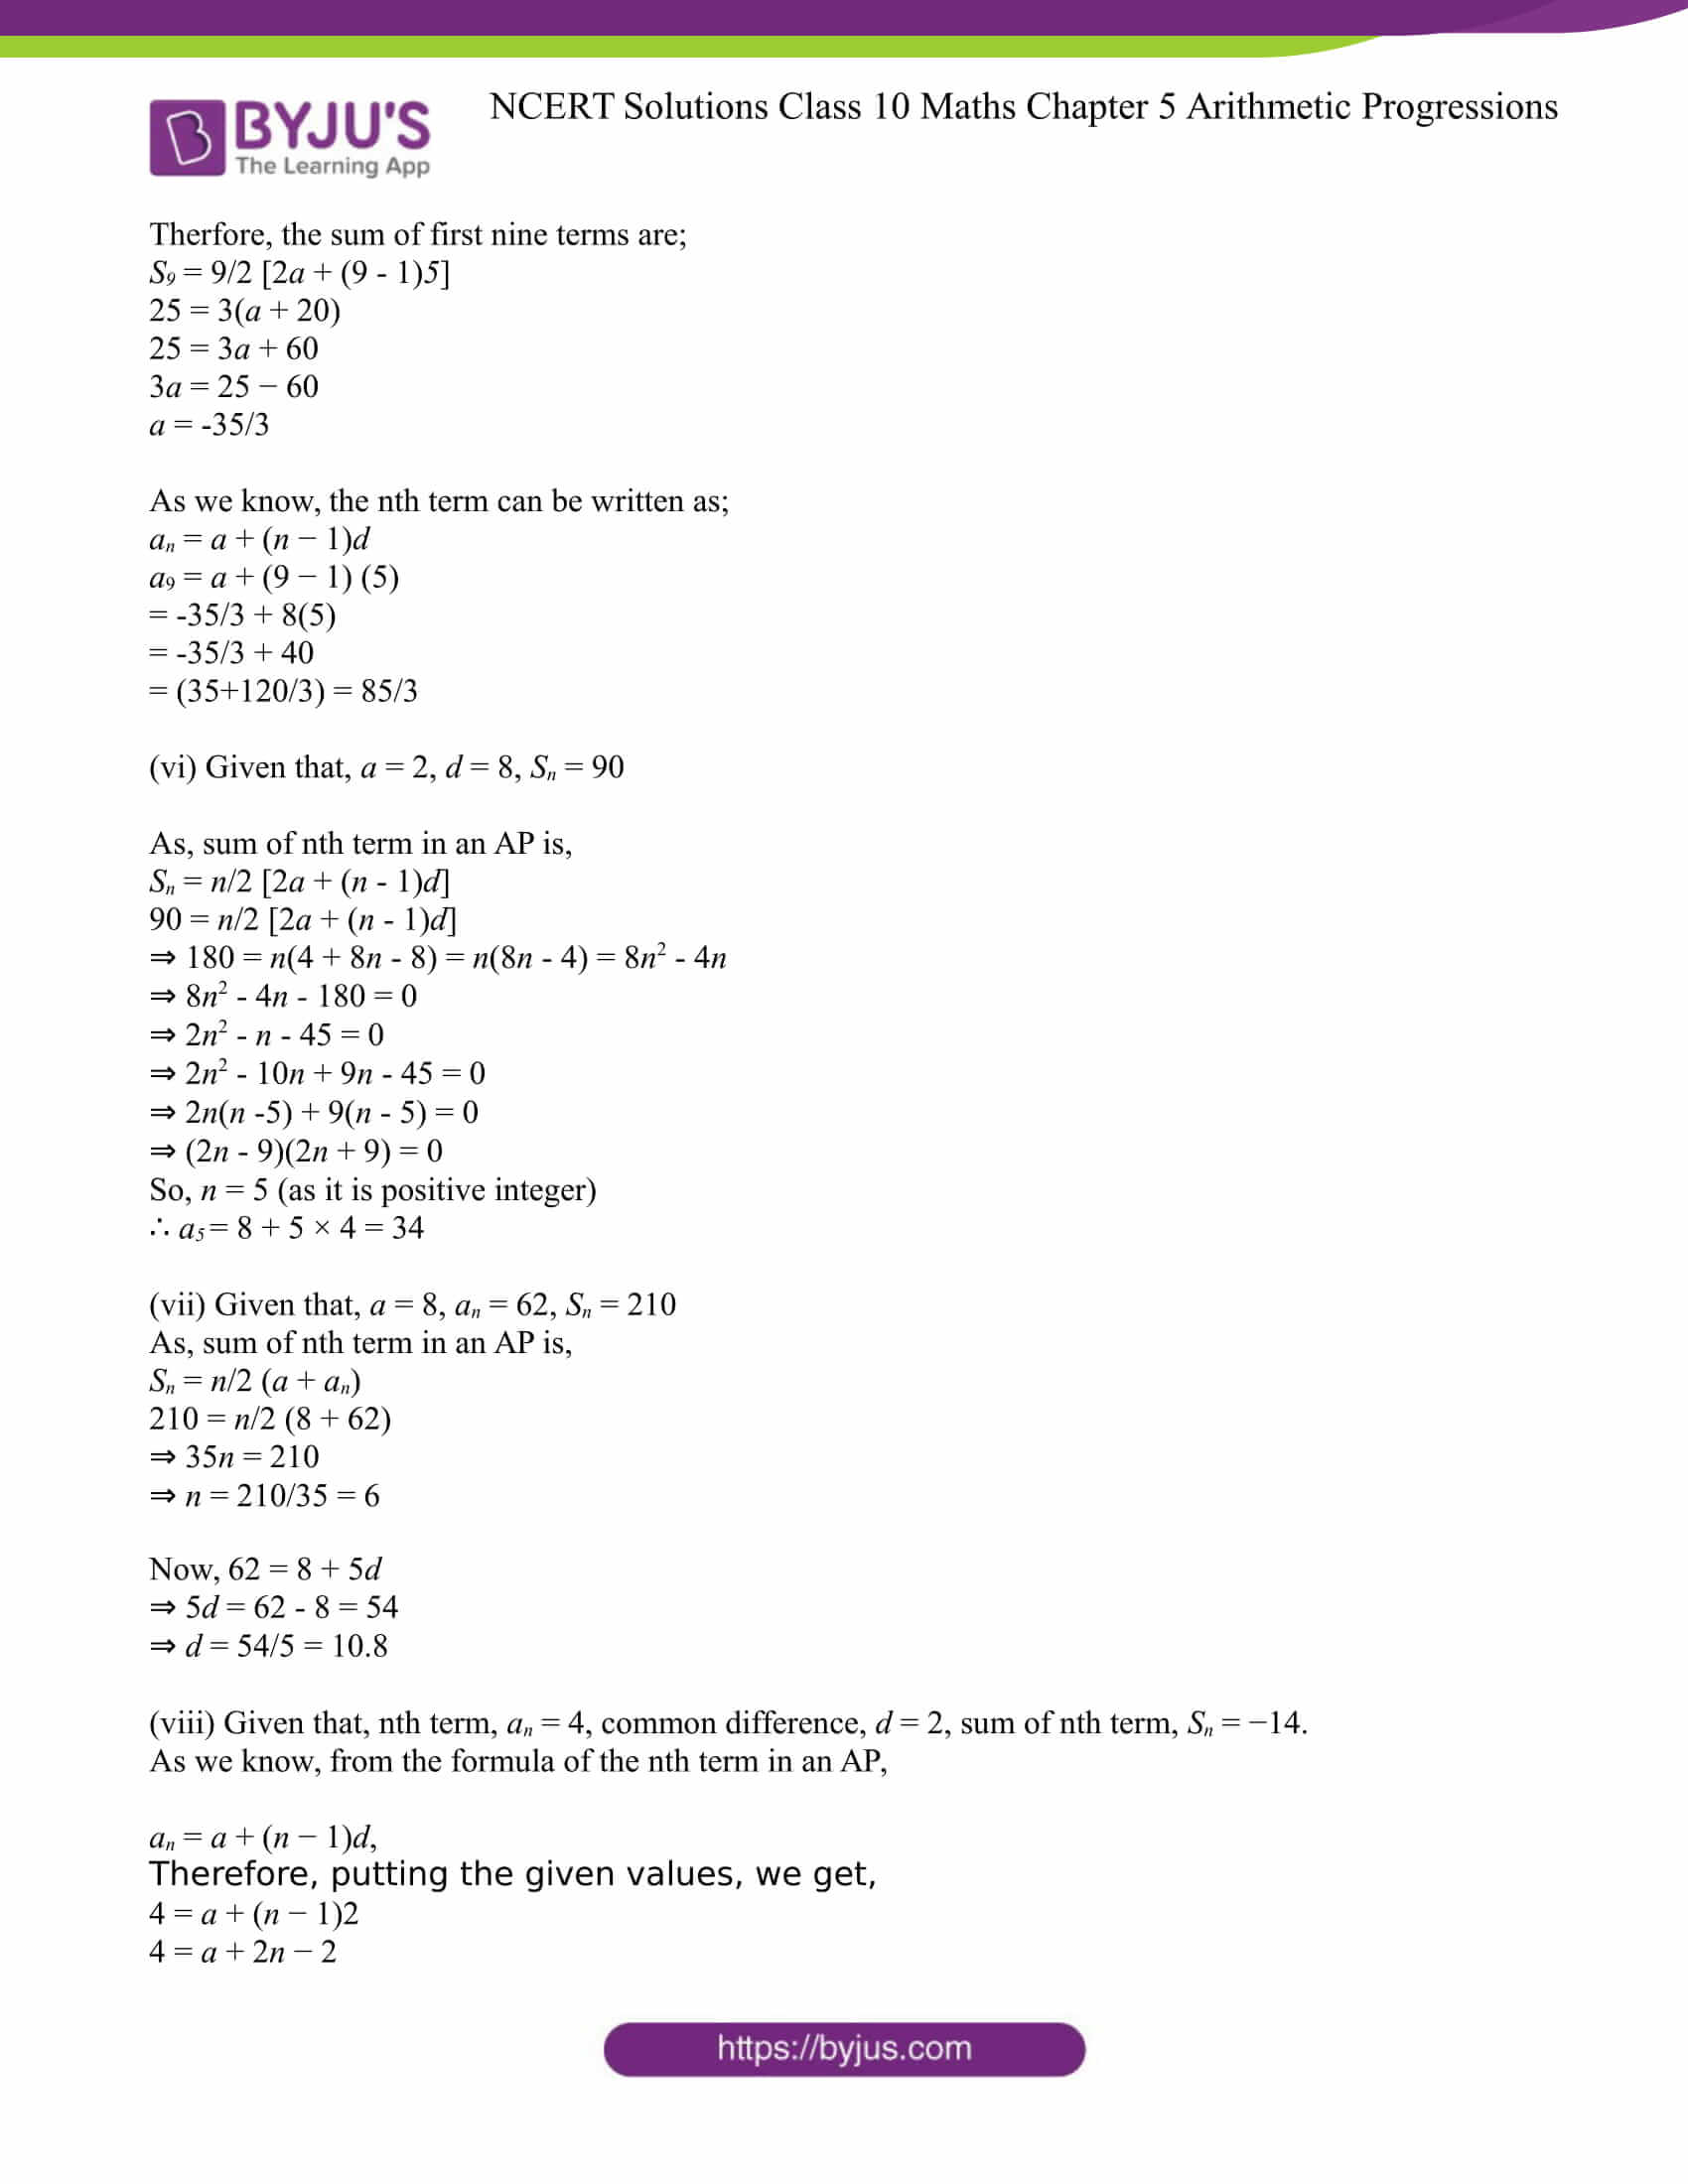 NCERT Solution for CBSE class 10 Maths Chapter 5 Arithmetic Progressions Excercise 5.3 Part 06